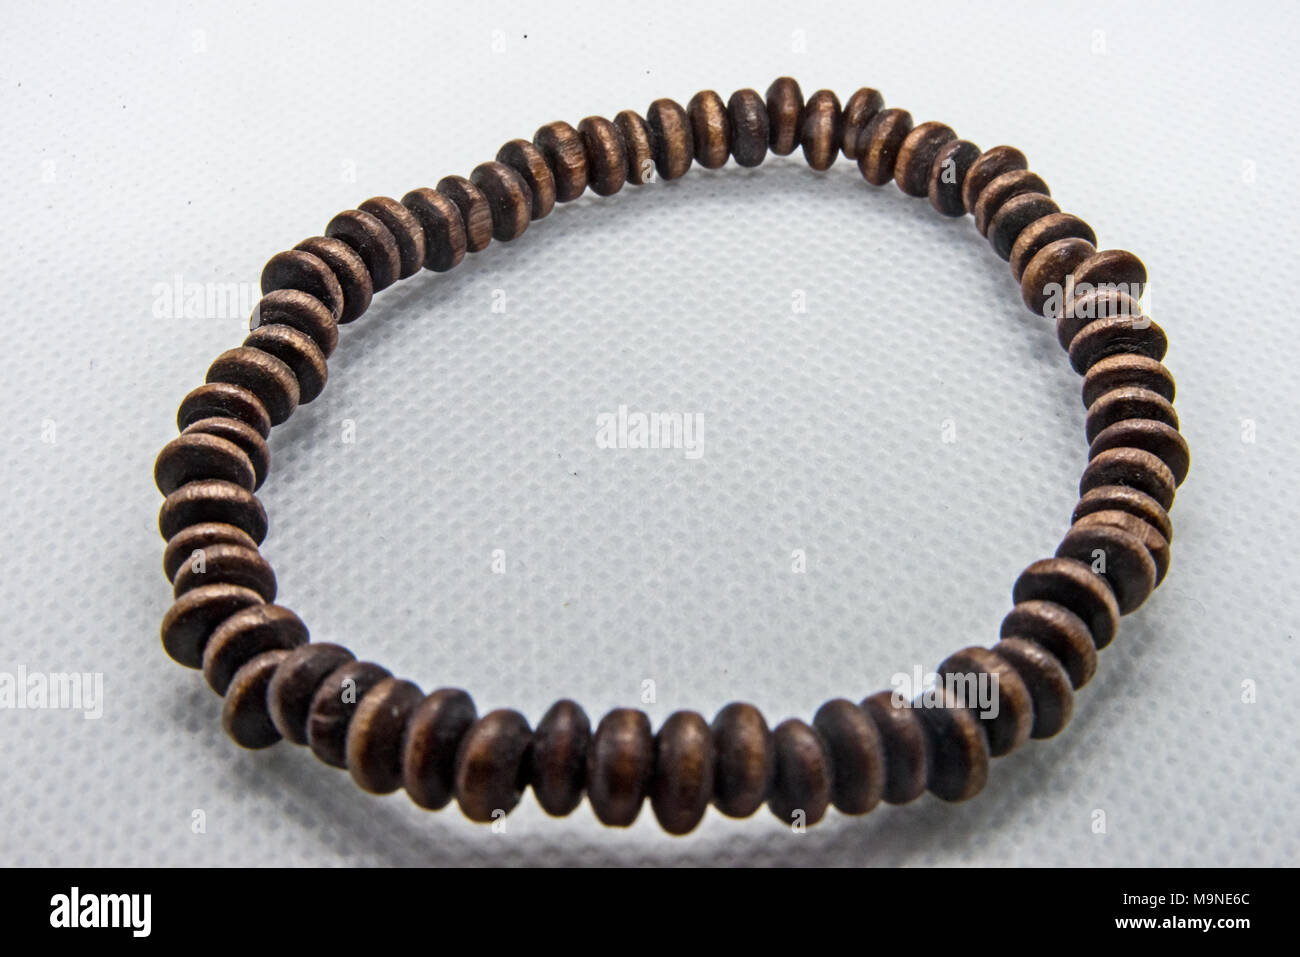 Brown Wooden bangle - Stock Image